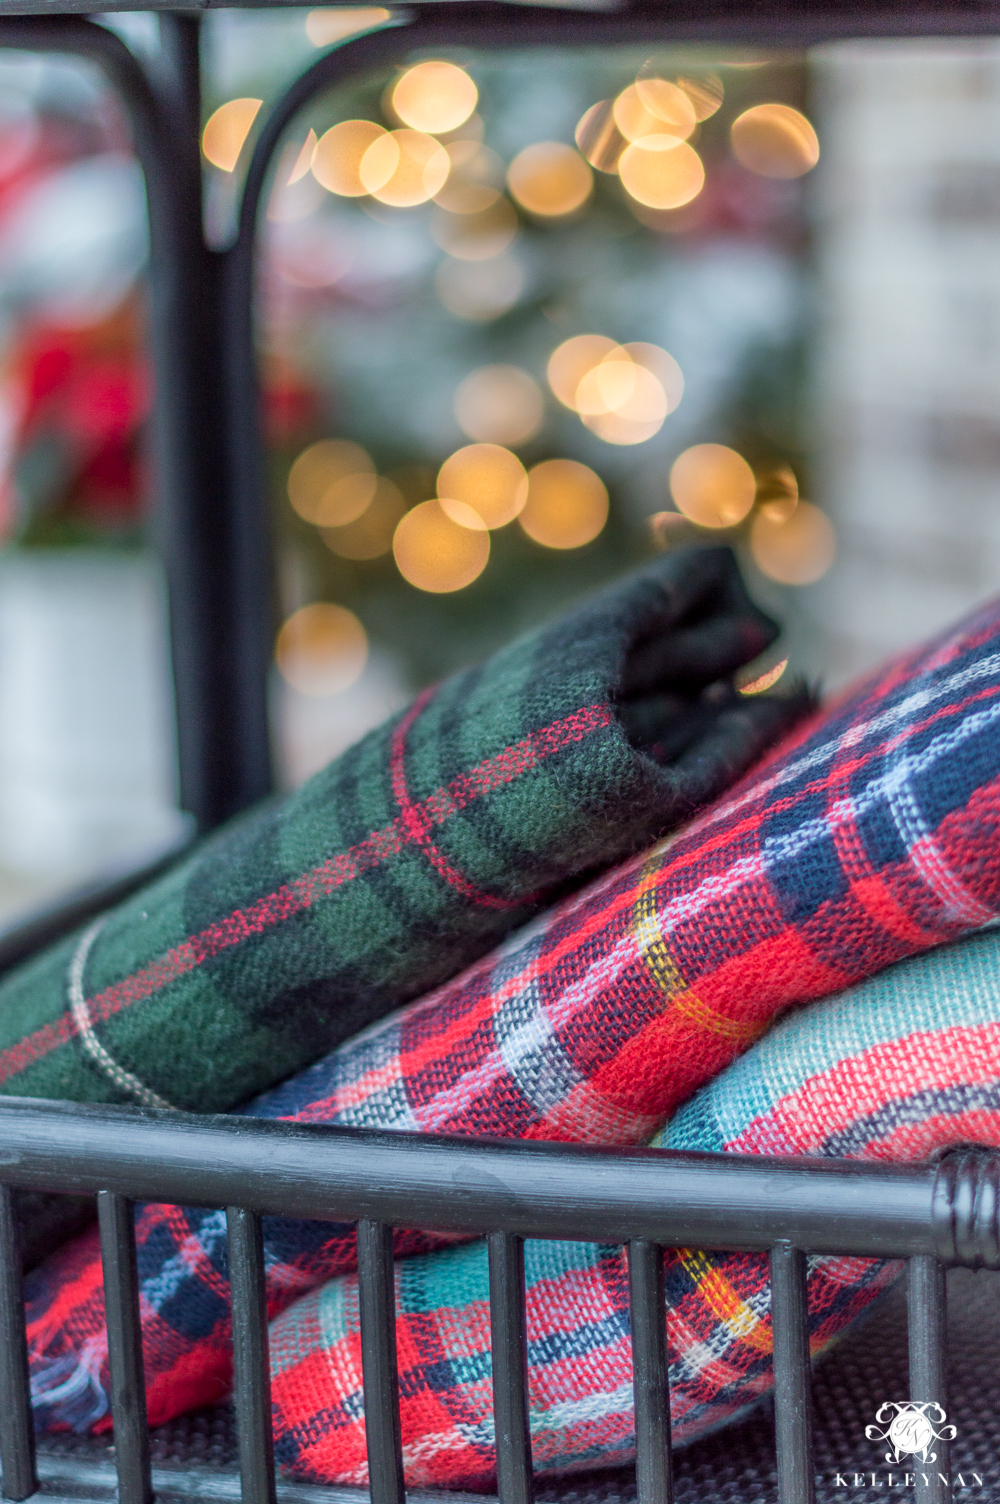 Plaid Throws for Front Porch for Christmas